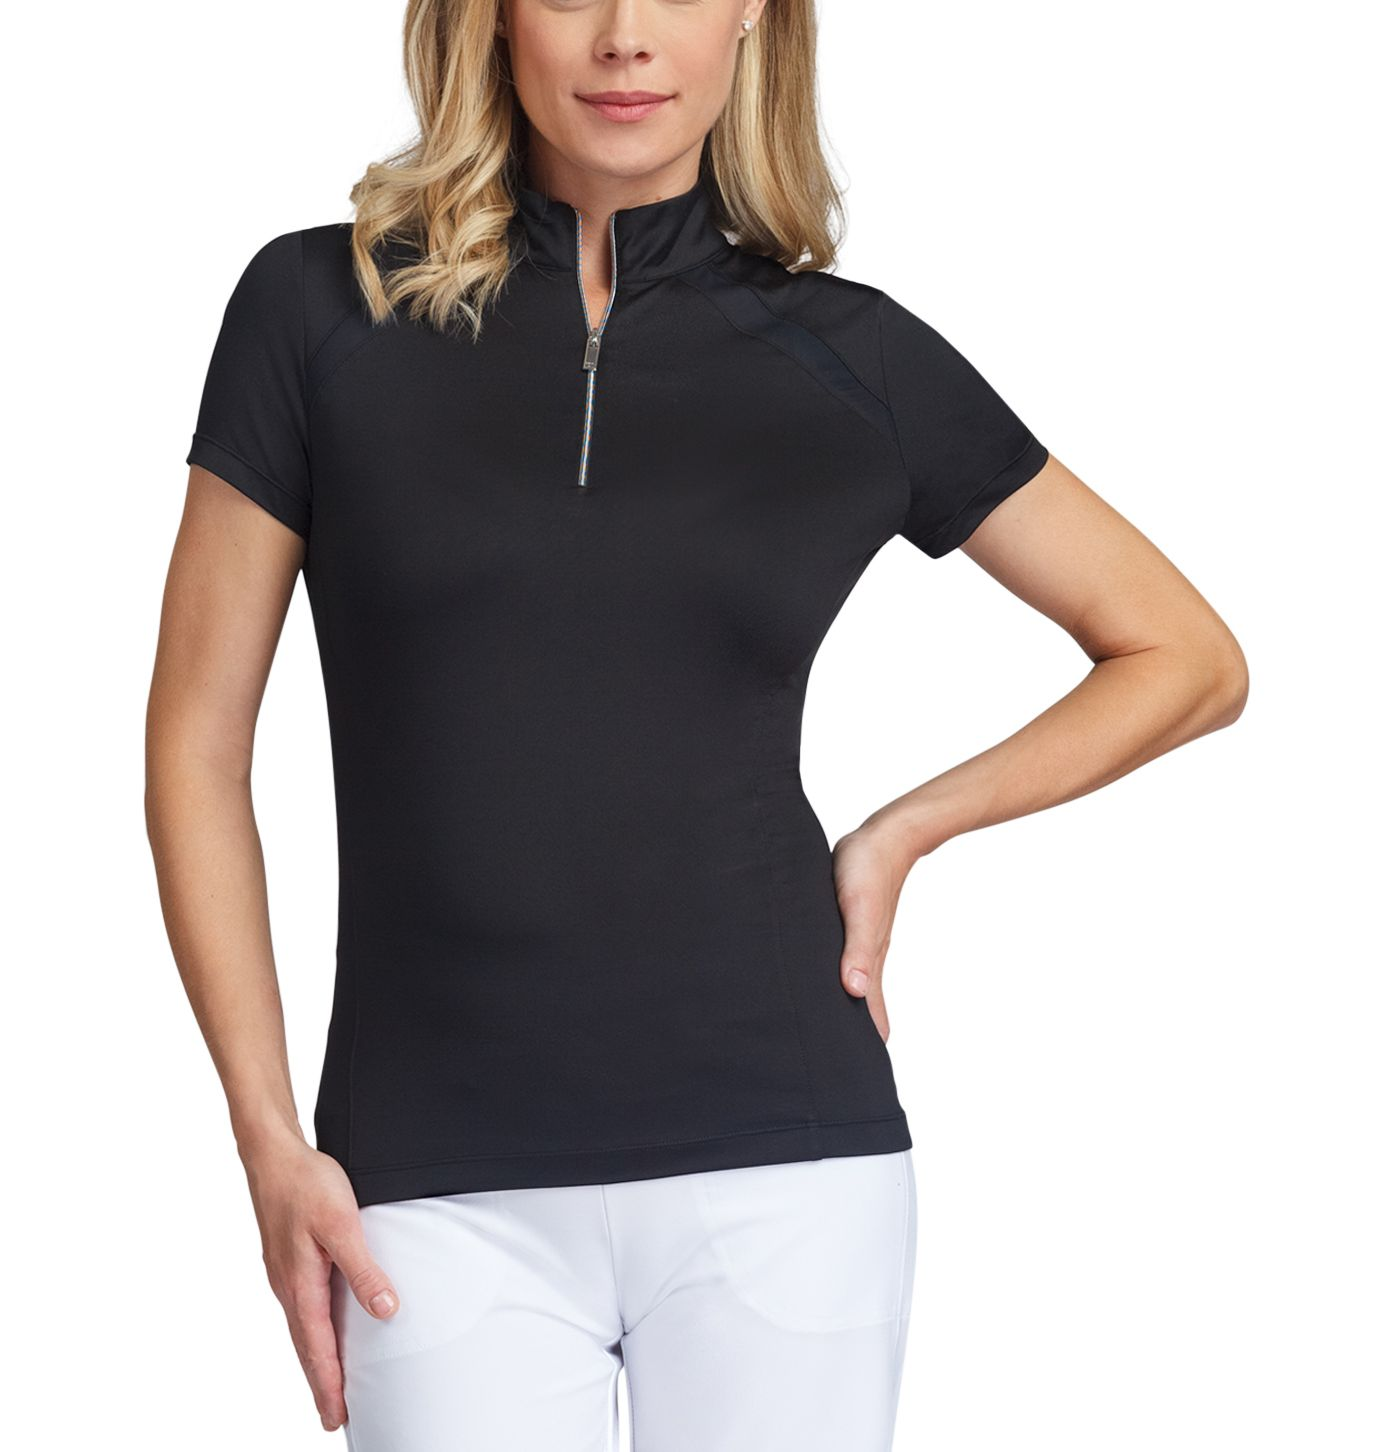 Tail Women's ¼-Zip Mock Neck Golf Top - Extended Sizes